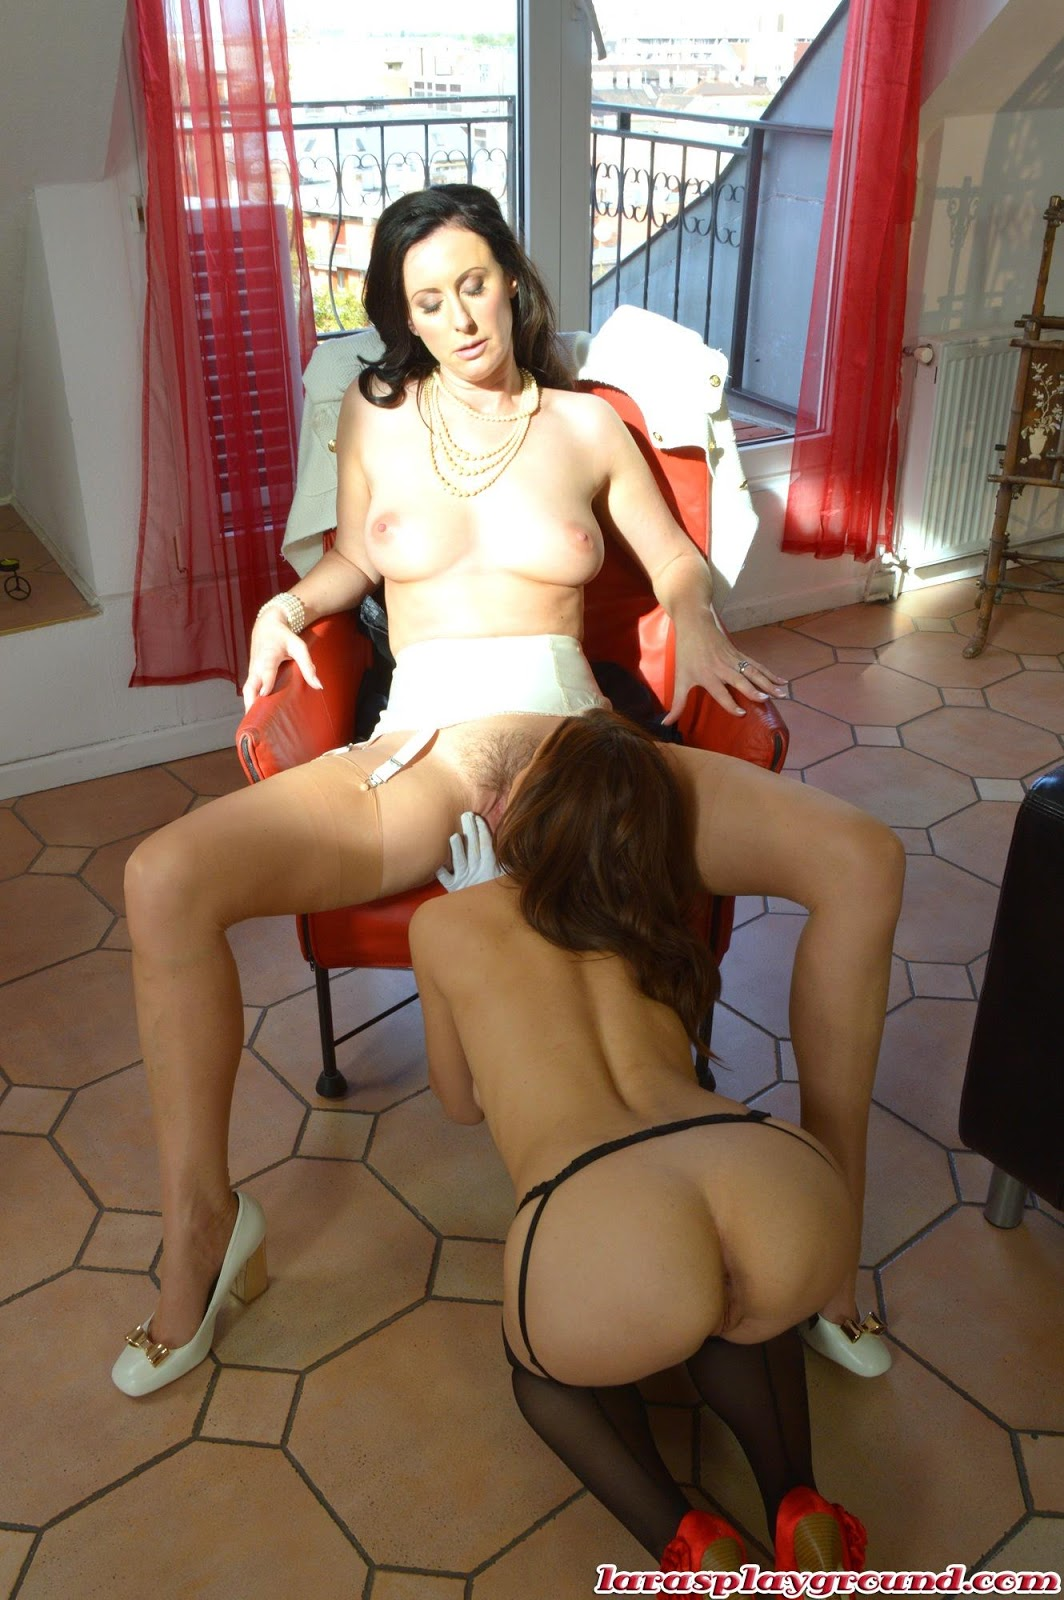 lesbian mom seducing young girl video